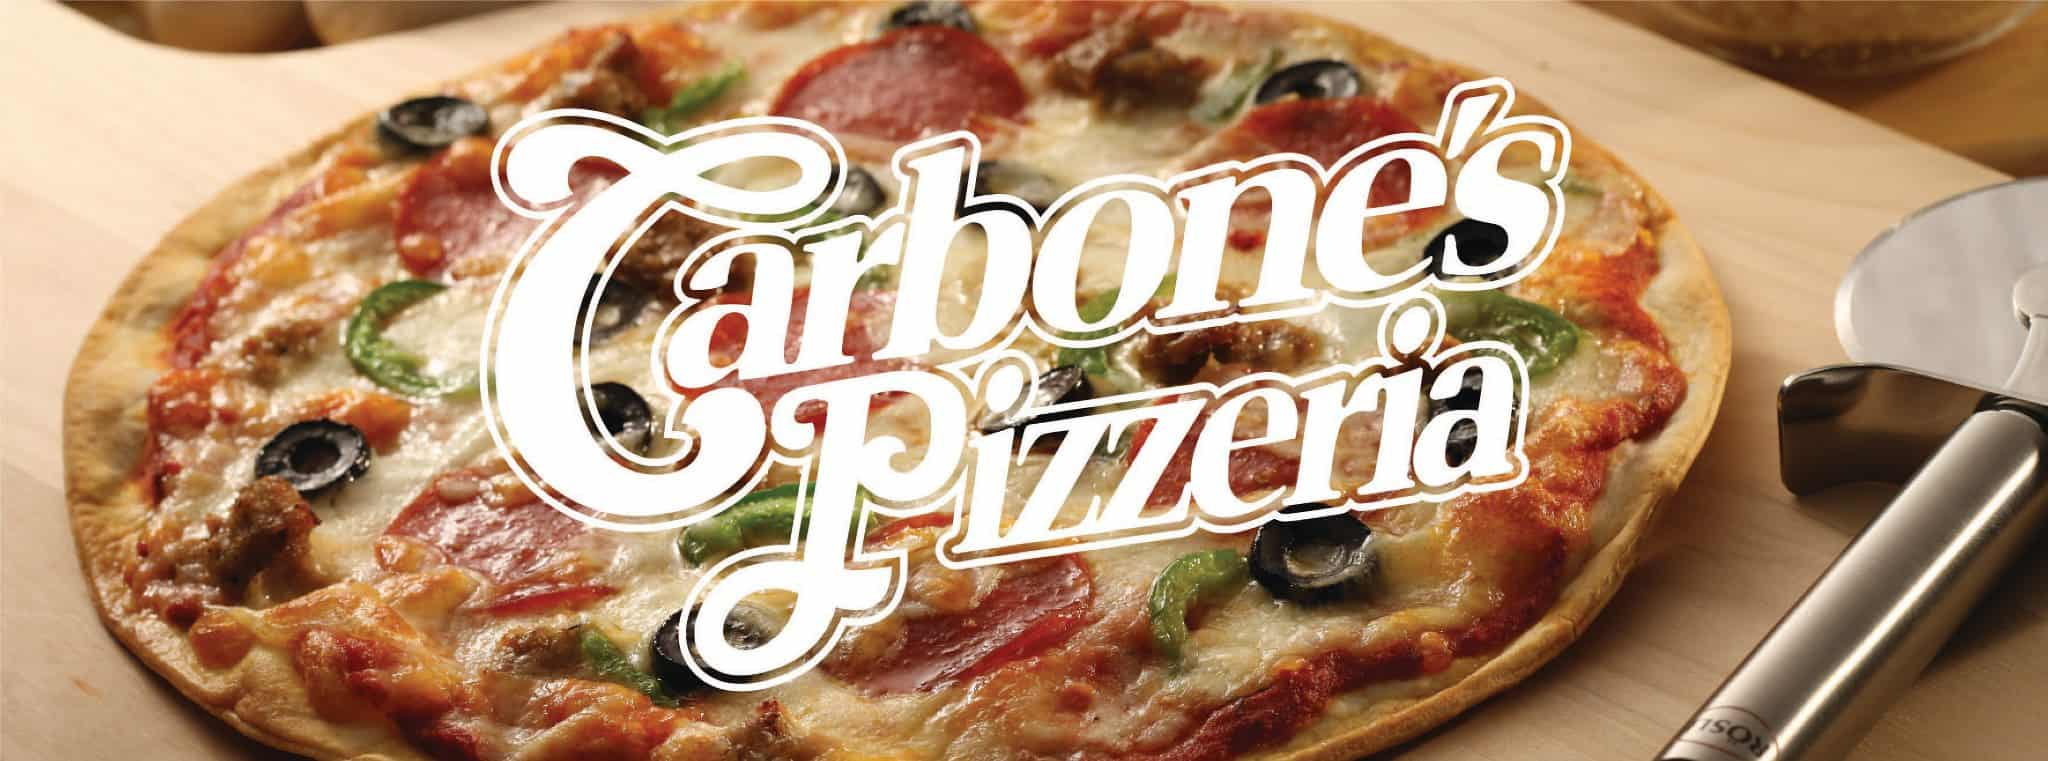 Carbone's Pizzeria and Pub of White Bear Lake